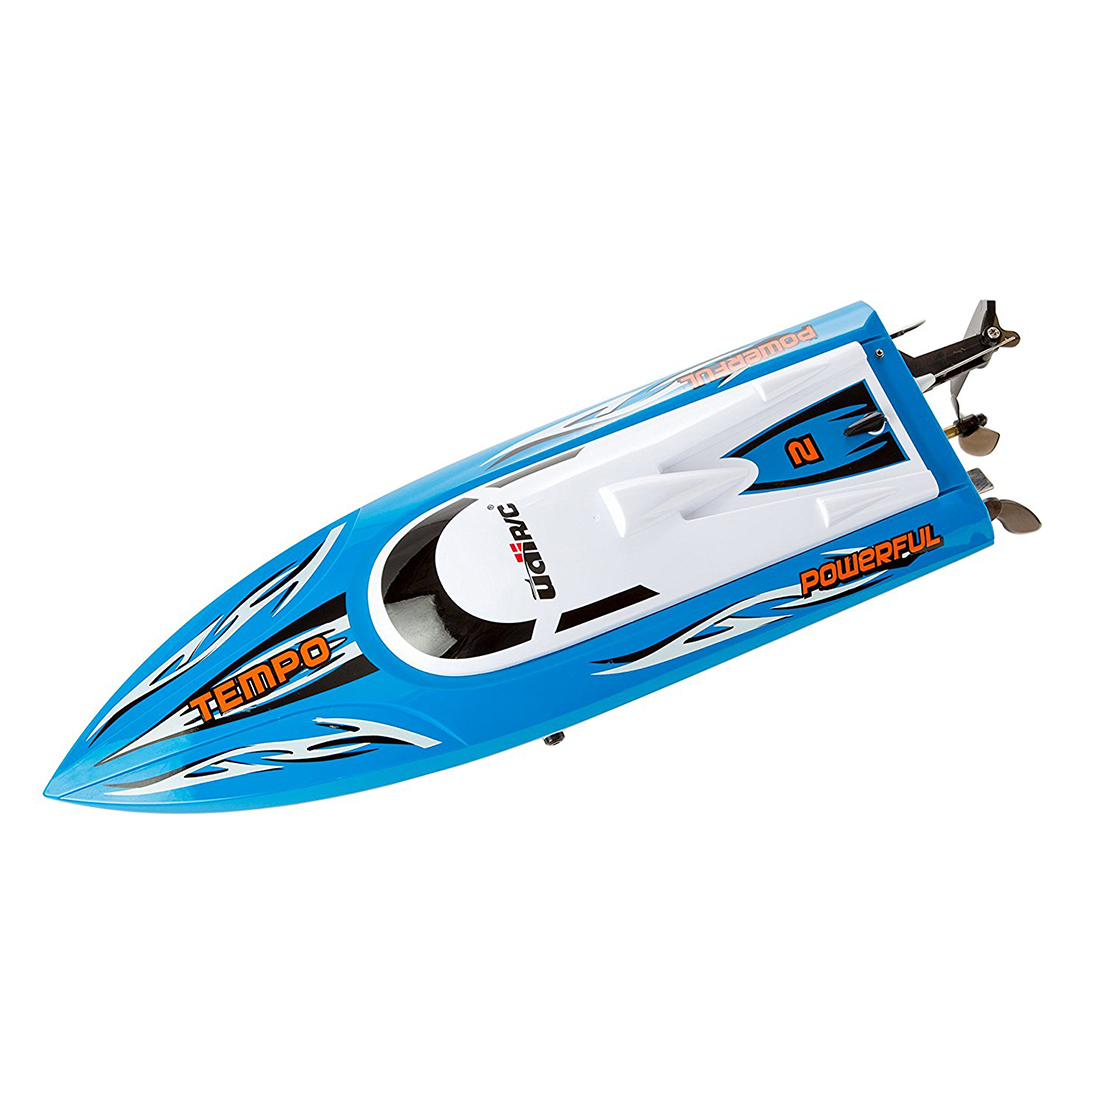 New Udirc RC Boat UDI002 2.4GHz Remote Control Boat, Blue, High Speed, Electric